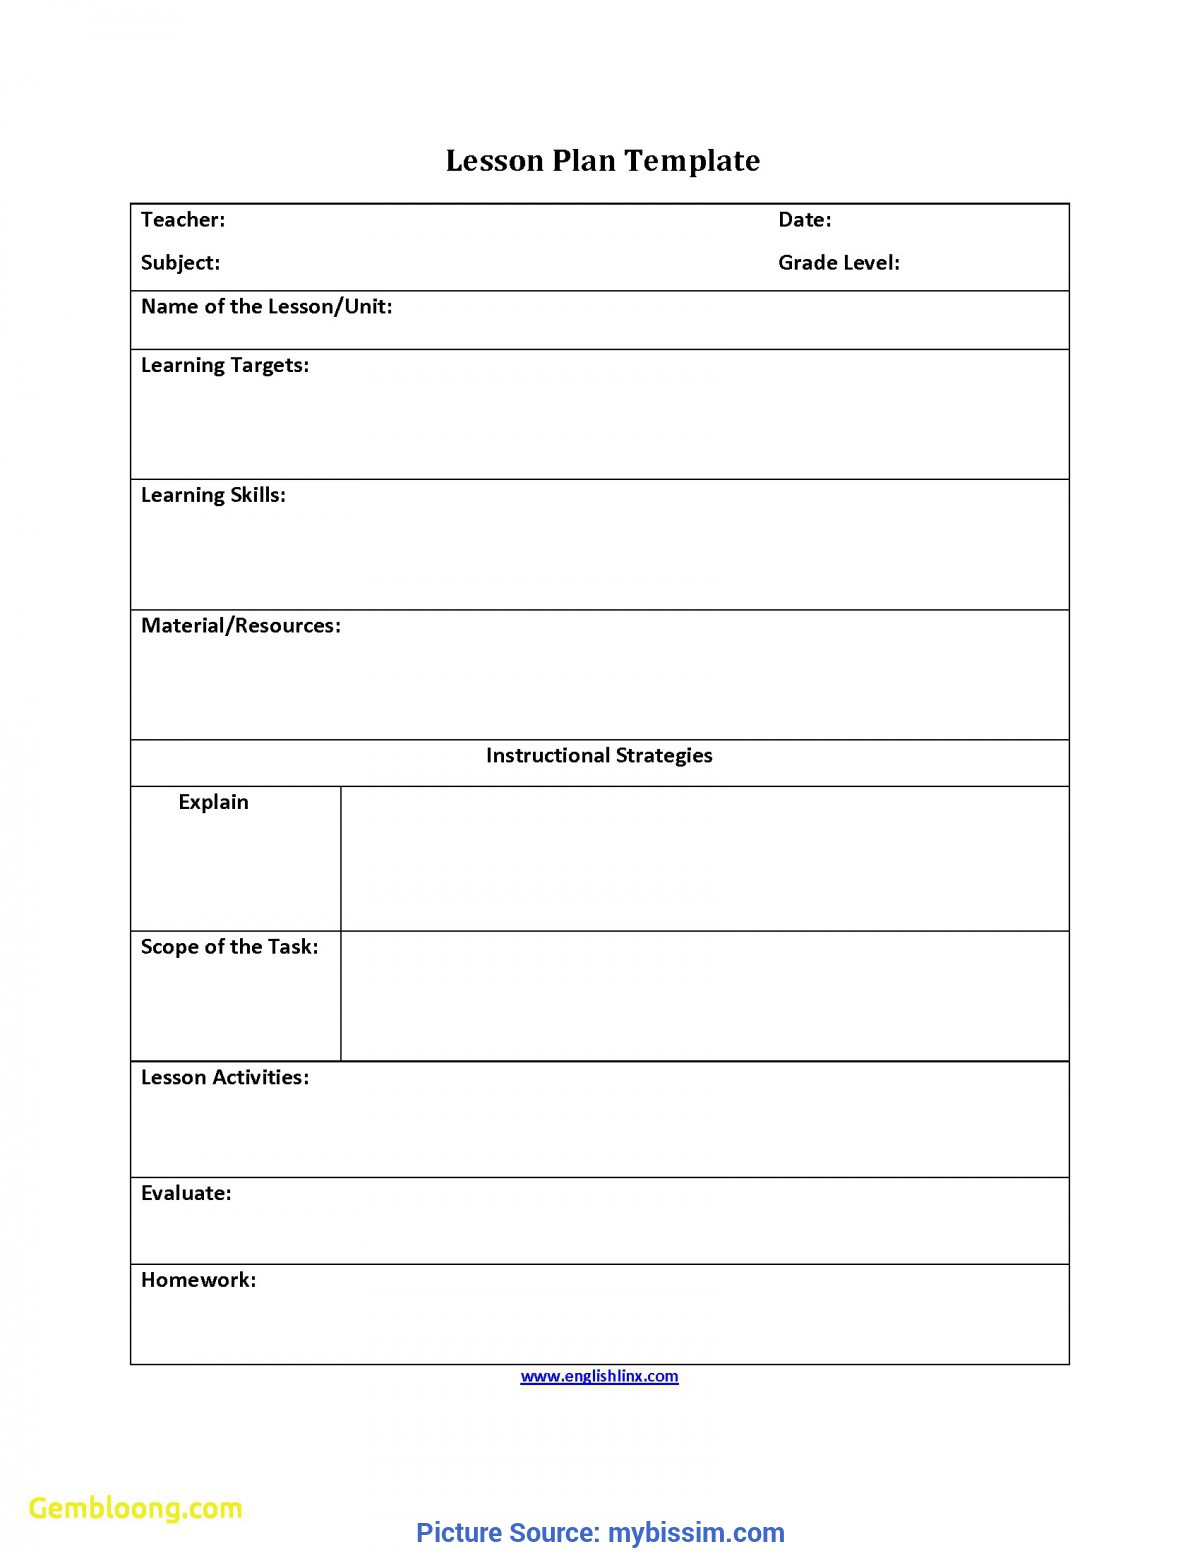 Excellent English Lesson Plan Sample Awesome Free Lesson Plan Template | Best Templ